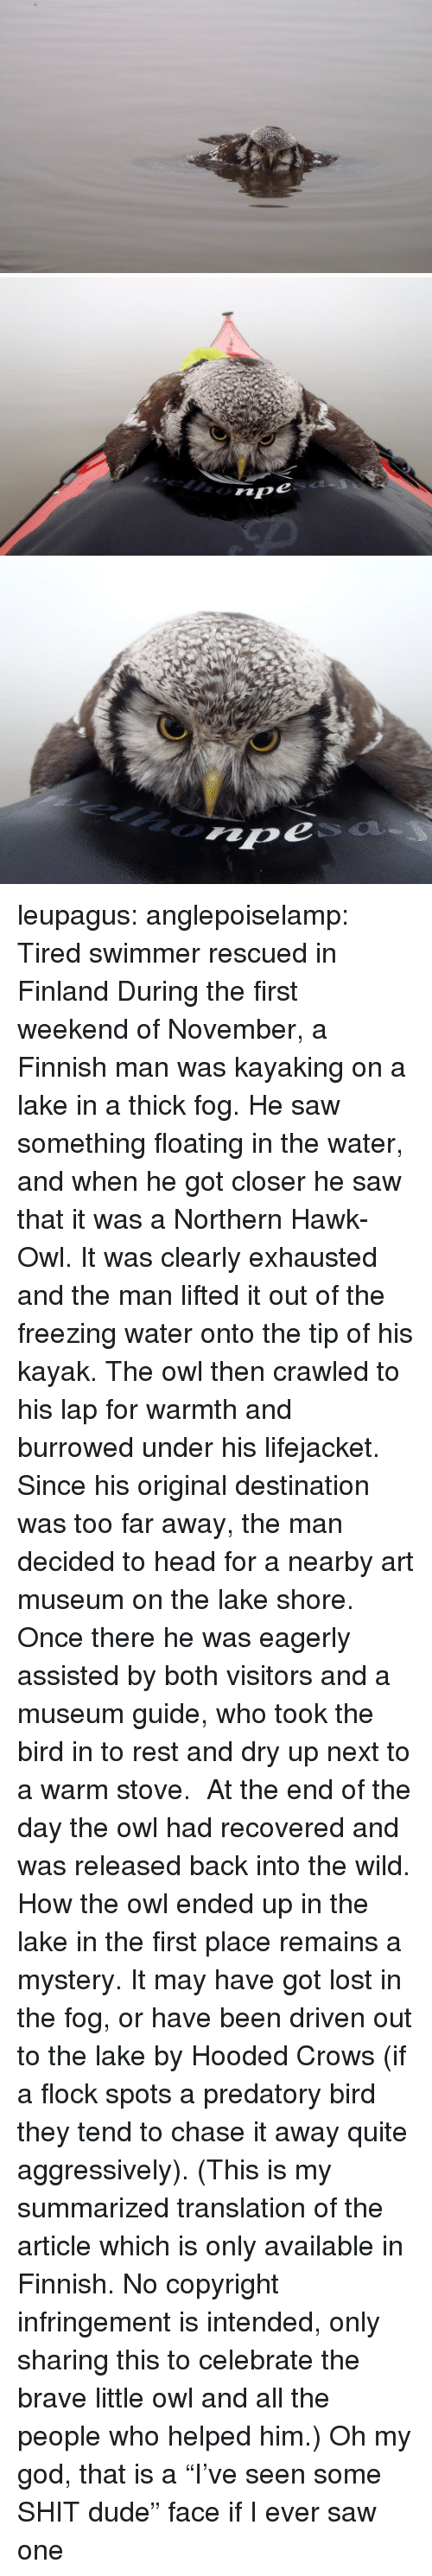 """Dude, God, and Head: leupagus:  anglepoiselamp:  Tired swimmer rescued in Finland During the first weekend of November, a Finnish man was kayaking on a lake in a thick fog. He saw something floating in the water, and when he got closer he saw that it was a Northern Hawk-Owl. It was clearly exhausted and the man lifted it out of the freezing water onto the tip of his kayak. The owl then crawled to his lap for warmth and burrowed under his lifejacket. Since his original destination was too far away, the man decided to head for a nearby art museum on the lake shore. Once there he was eagerly assisted by both visitors and a museum guide, who took the bird in to rest and dry up next to a warm stove. At the end of the day the owl had recovered and was released back into the wild. How the owl ended up in the lake in the first place remains a mystery. It may have got lost in the fog, or have been driven out to the lake by Hooded Crows (if a flock spots a predatory bird they tend to chase it away quite aggressively). (This is my summarized translation of the article which is only available in Finnish. No copyright infringement is intended, only sharing this to celebrate the brave little owl and all the people who helped him.)  Oh my god, that is a """"I've seen some SHIT dude"""" face if I ever saw one"""